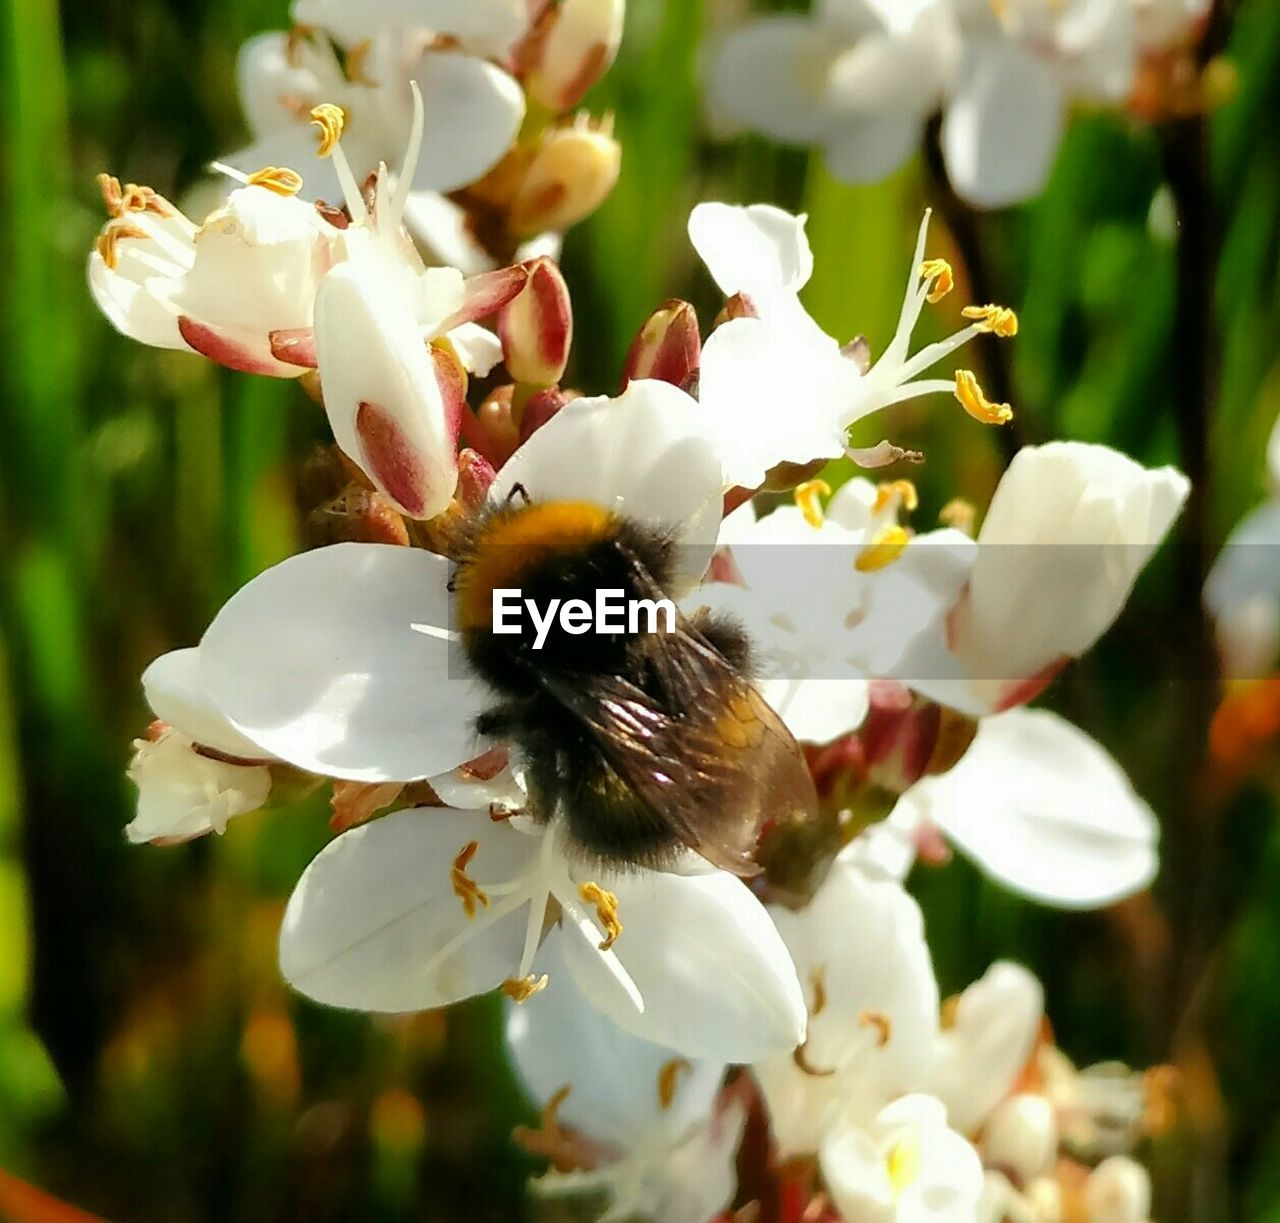 flower, insect, animal themes, petal, animals in the wild, fragility, nature, white color, freshness, growth, one animal, flower head, no people, day, beauty in nature, plant, close-up, bee, outdoors, pollination, blooming